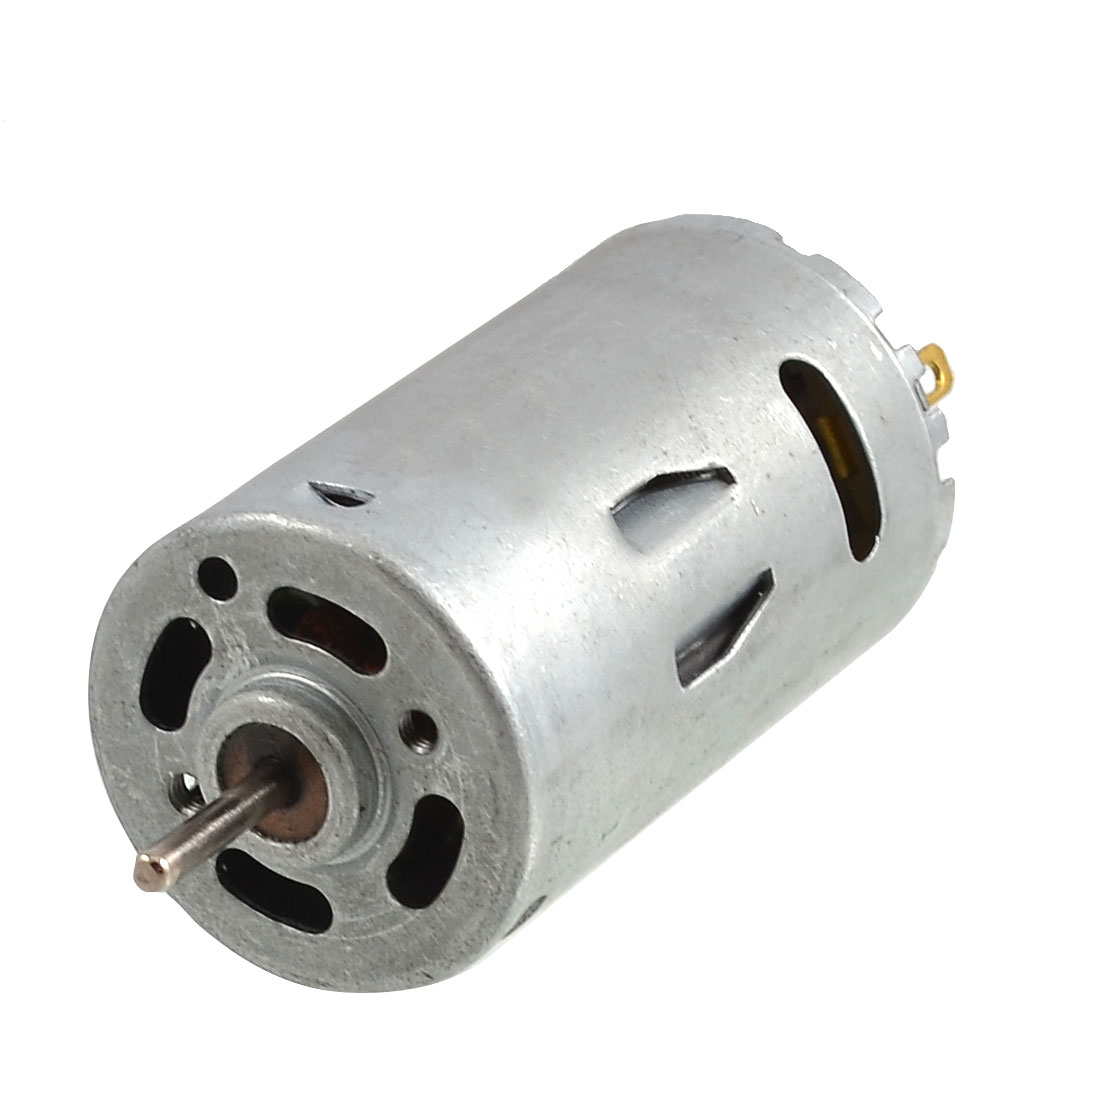 Home Appliances DC 12V 0.25A 2.3W 5000RPM Magnetic Micro Motor